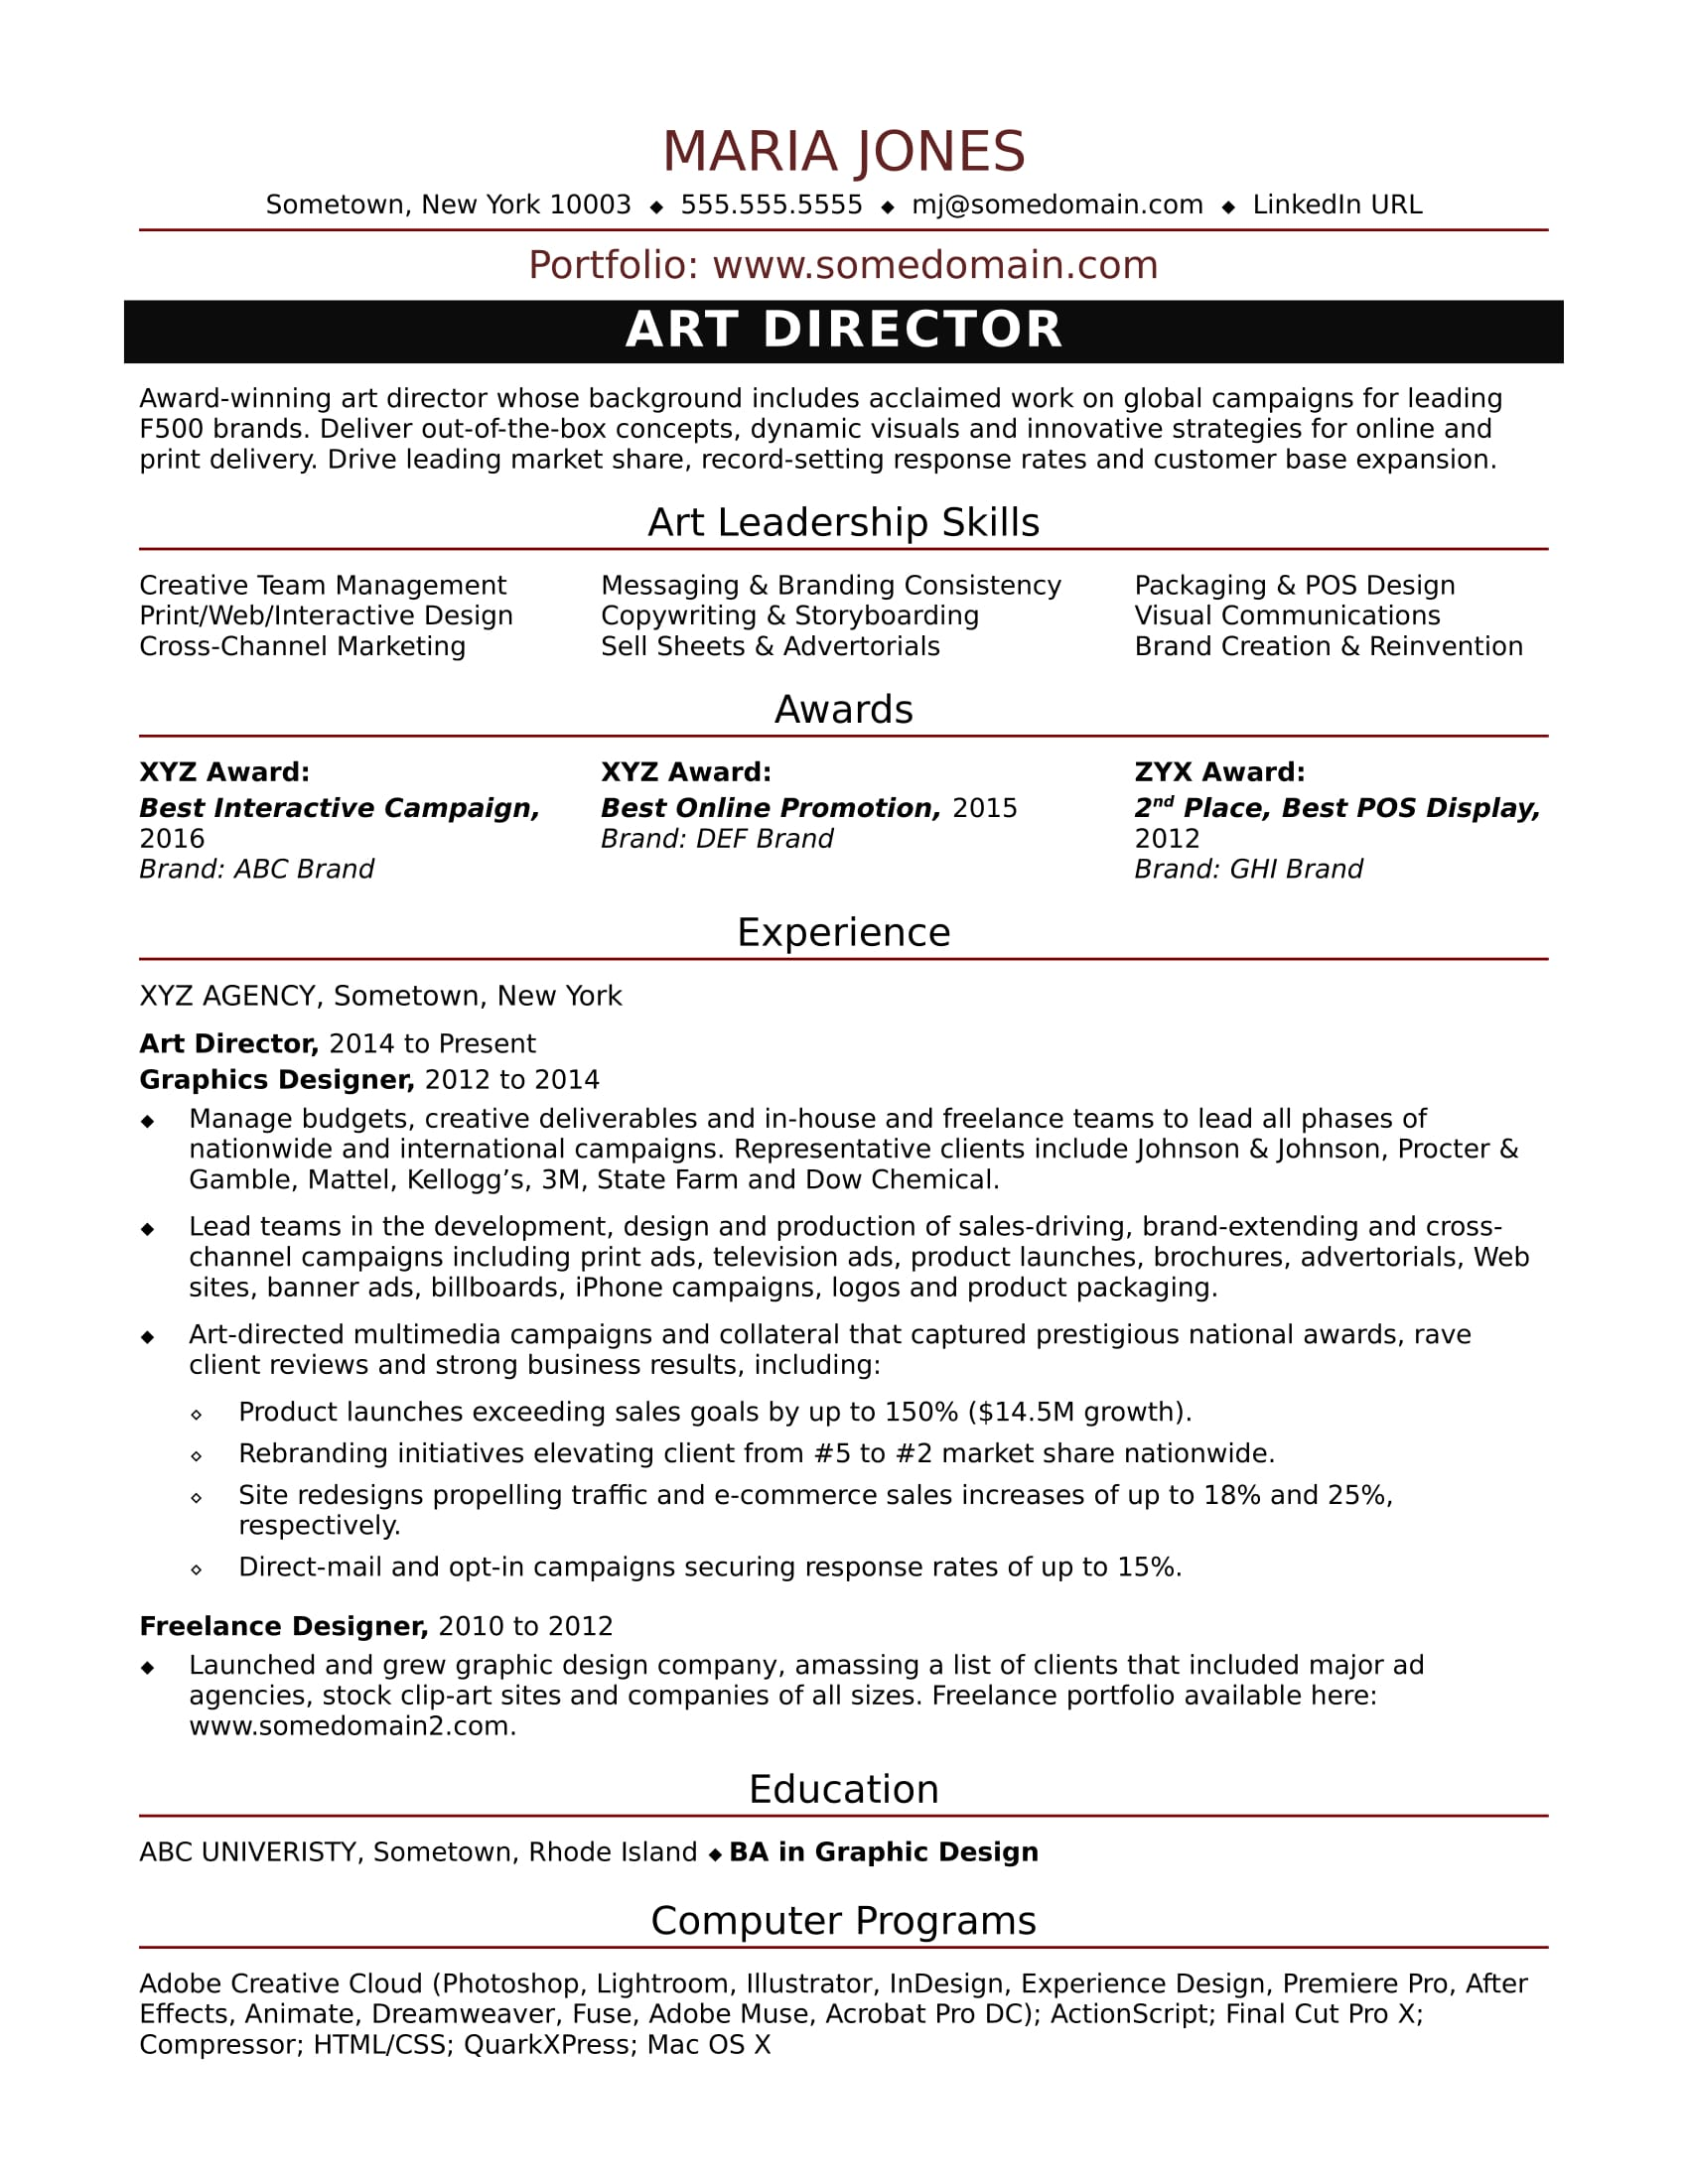 Sample resume for a midlevel art director monster sample resume for a midlevel art director yelopaper